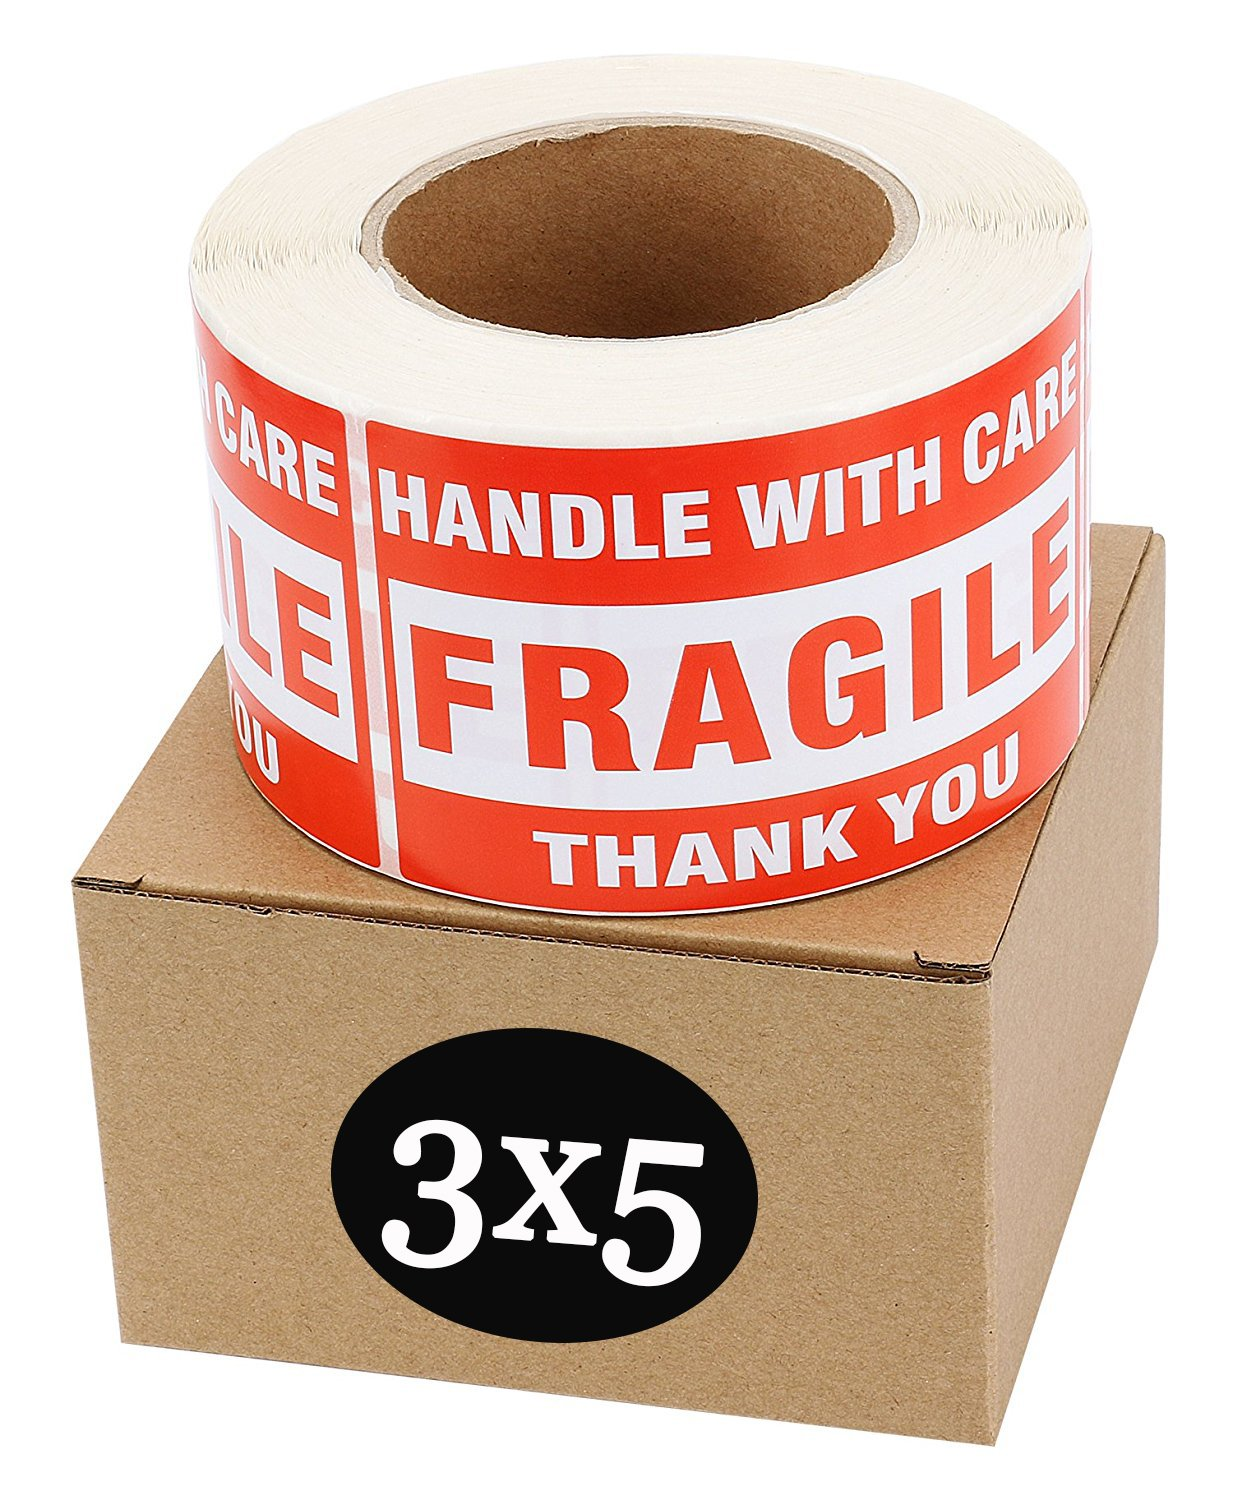 SJPACK Fragile Stickers 3'' x 5'' 1 Roll 500 Labels Fragile - Handle with Care - Thank You Shipping Labels Stickers (500 Labels/Roll) by SJPACK